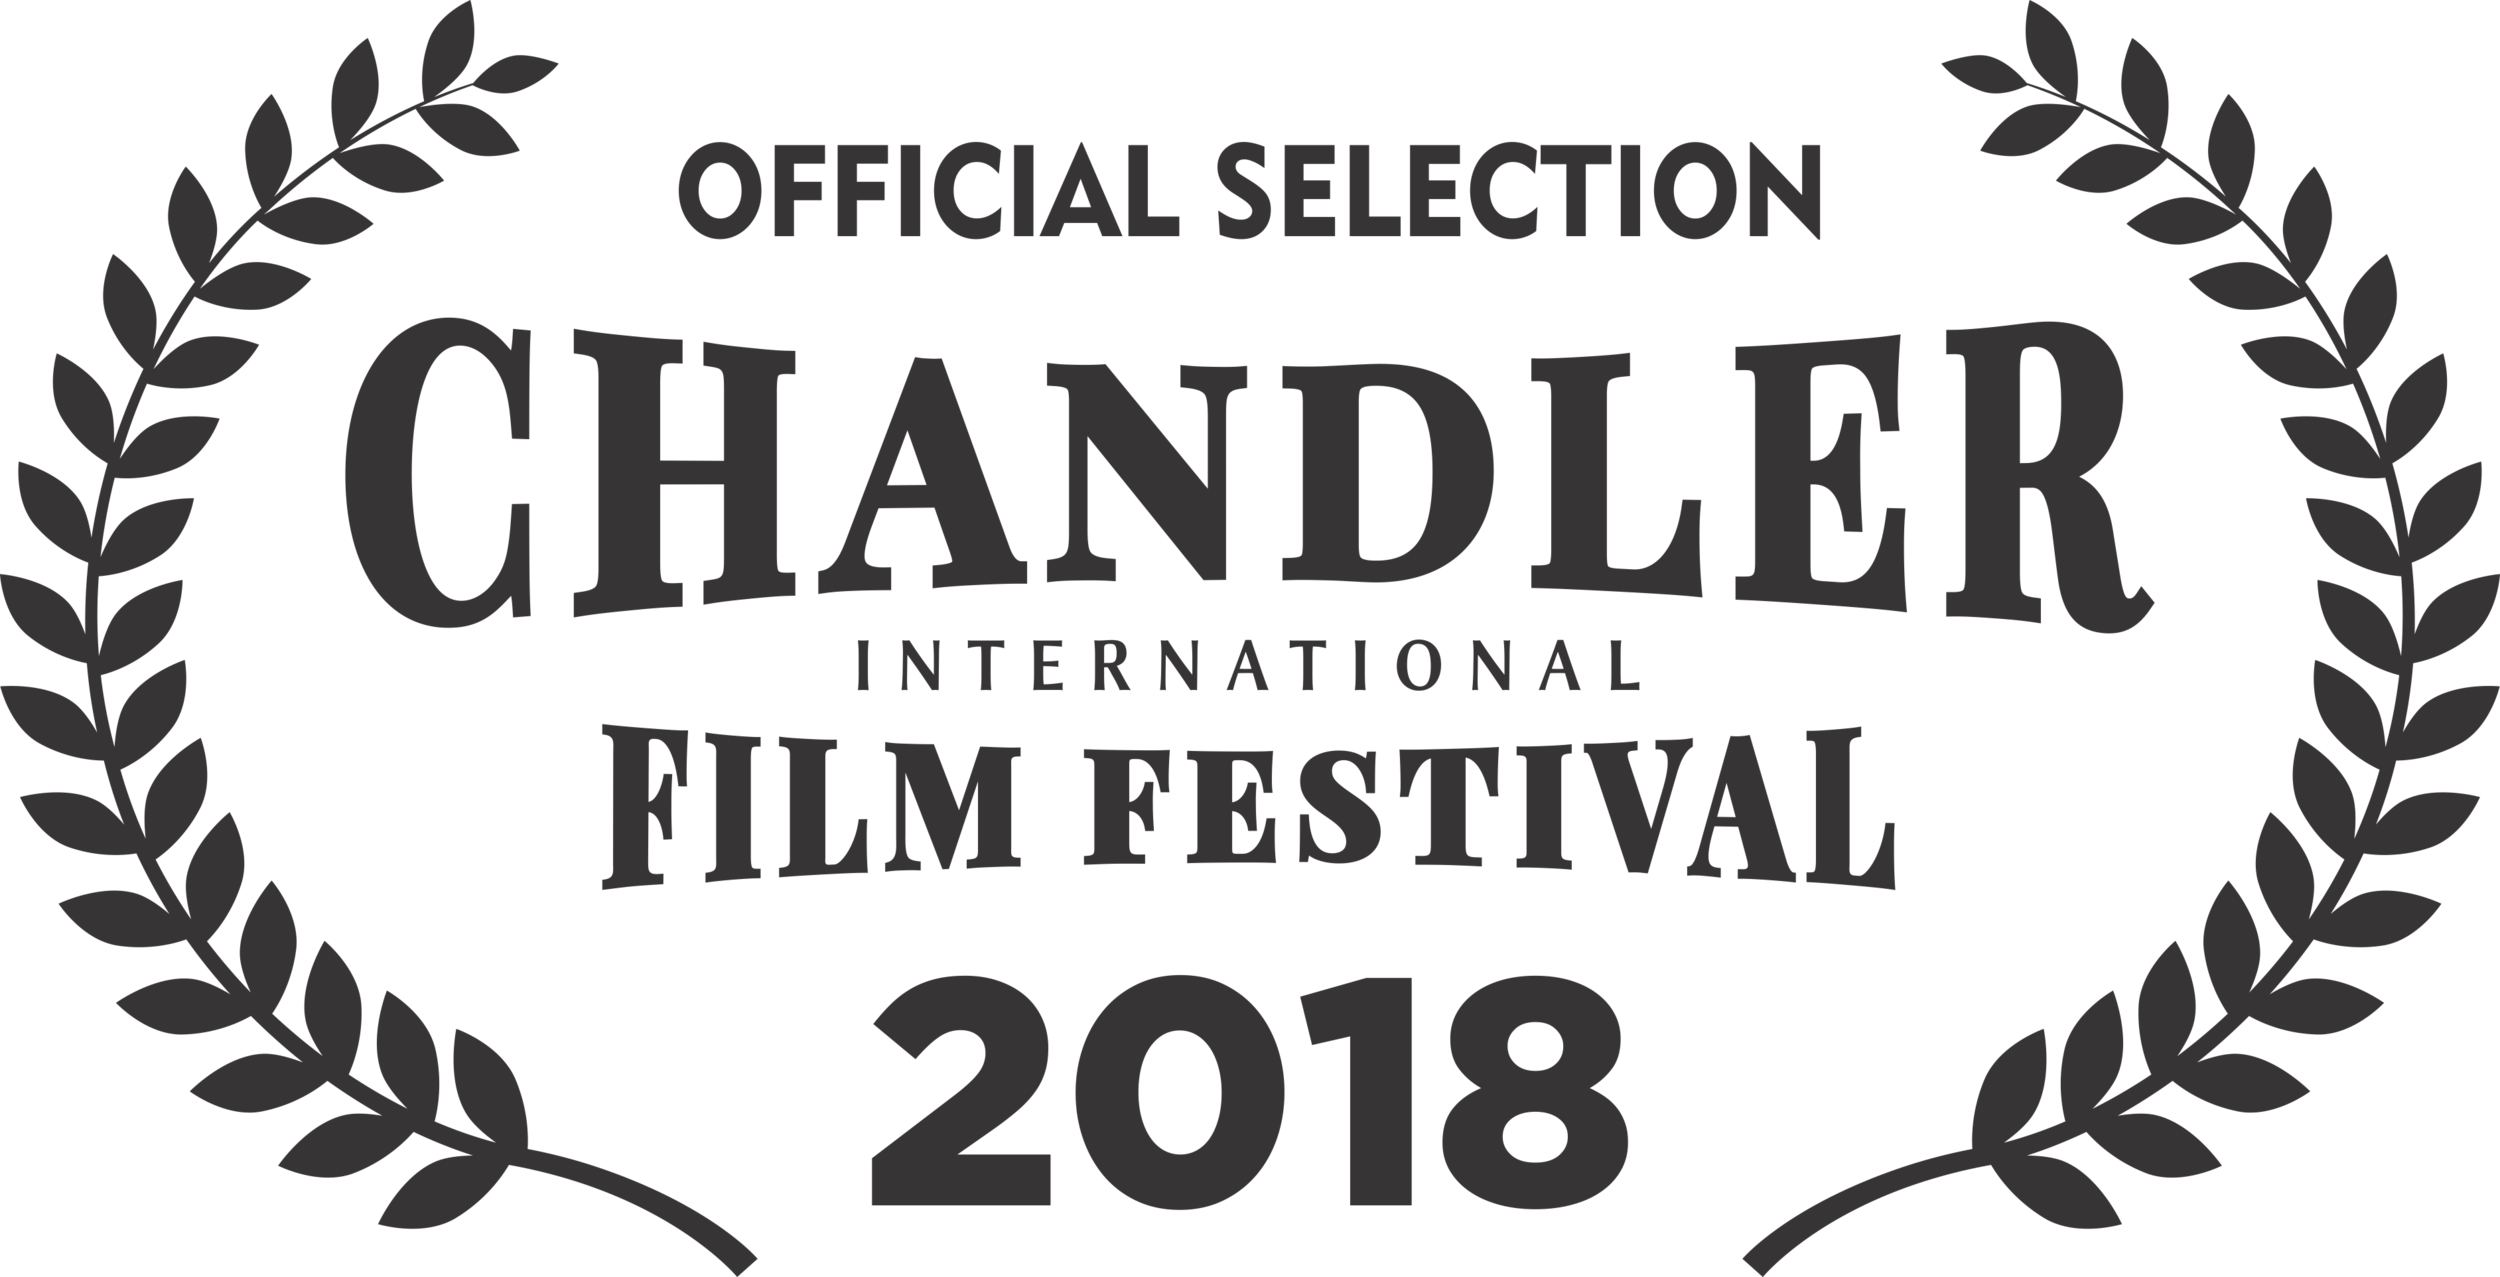 Official_Selection_2018_Black.png